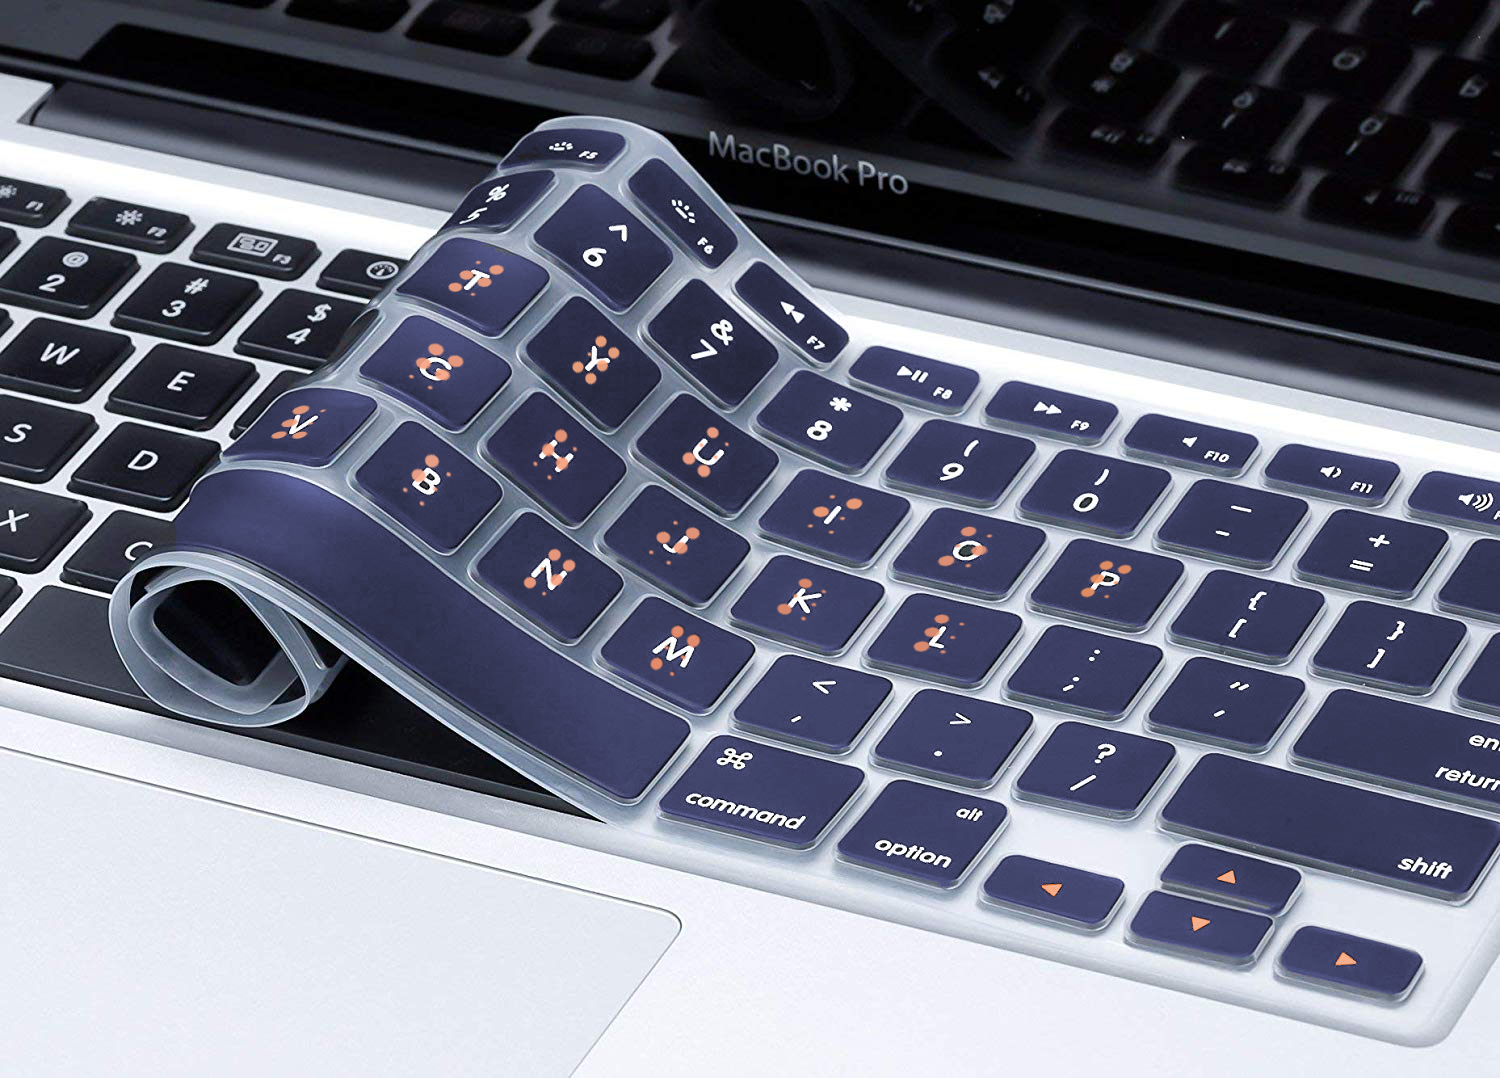 A keyboard overlay will help those that know or are learning Braille to more conveniently access technology.